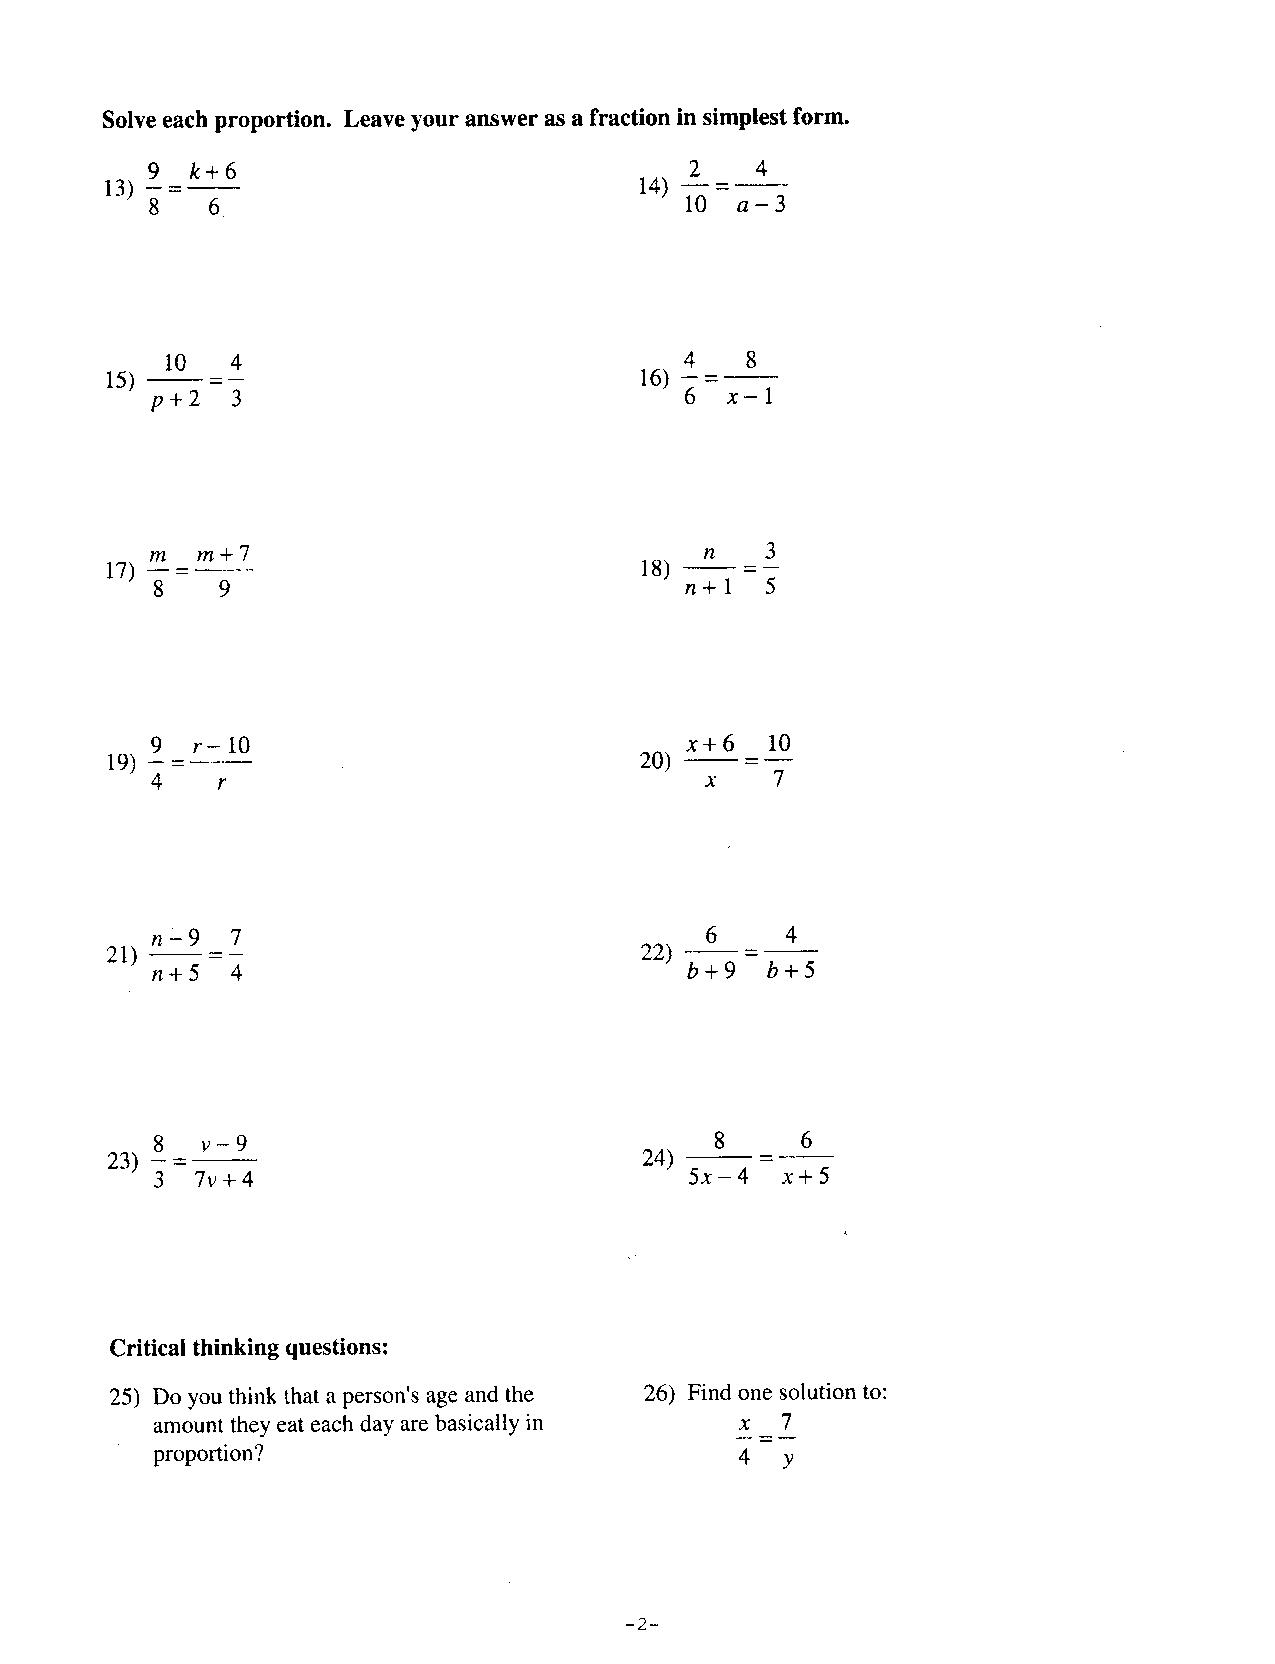 34 Solving Proportions Worksheet Answer Key